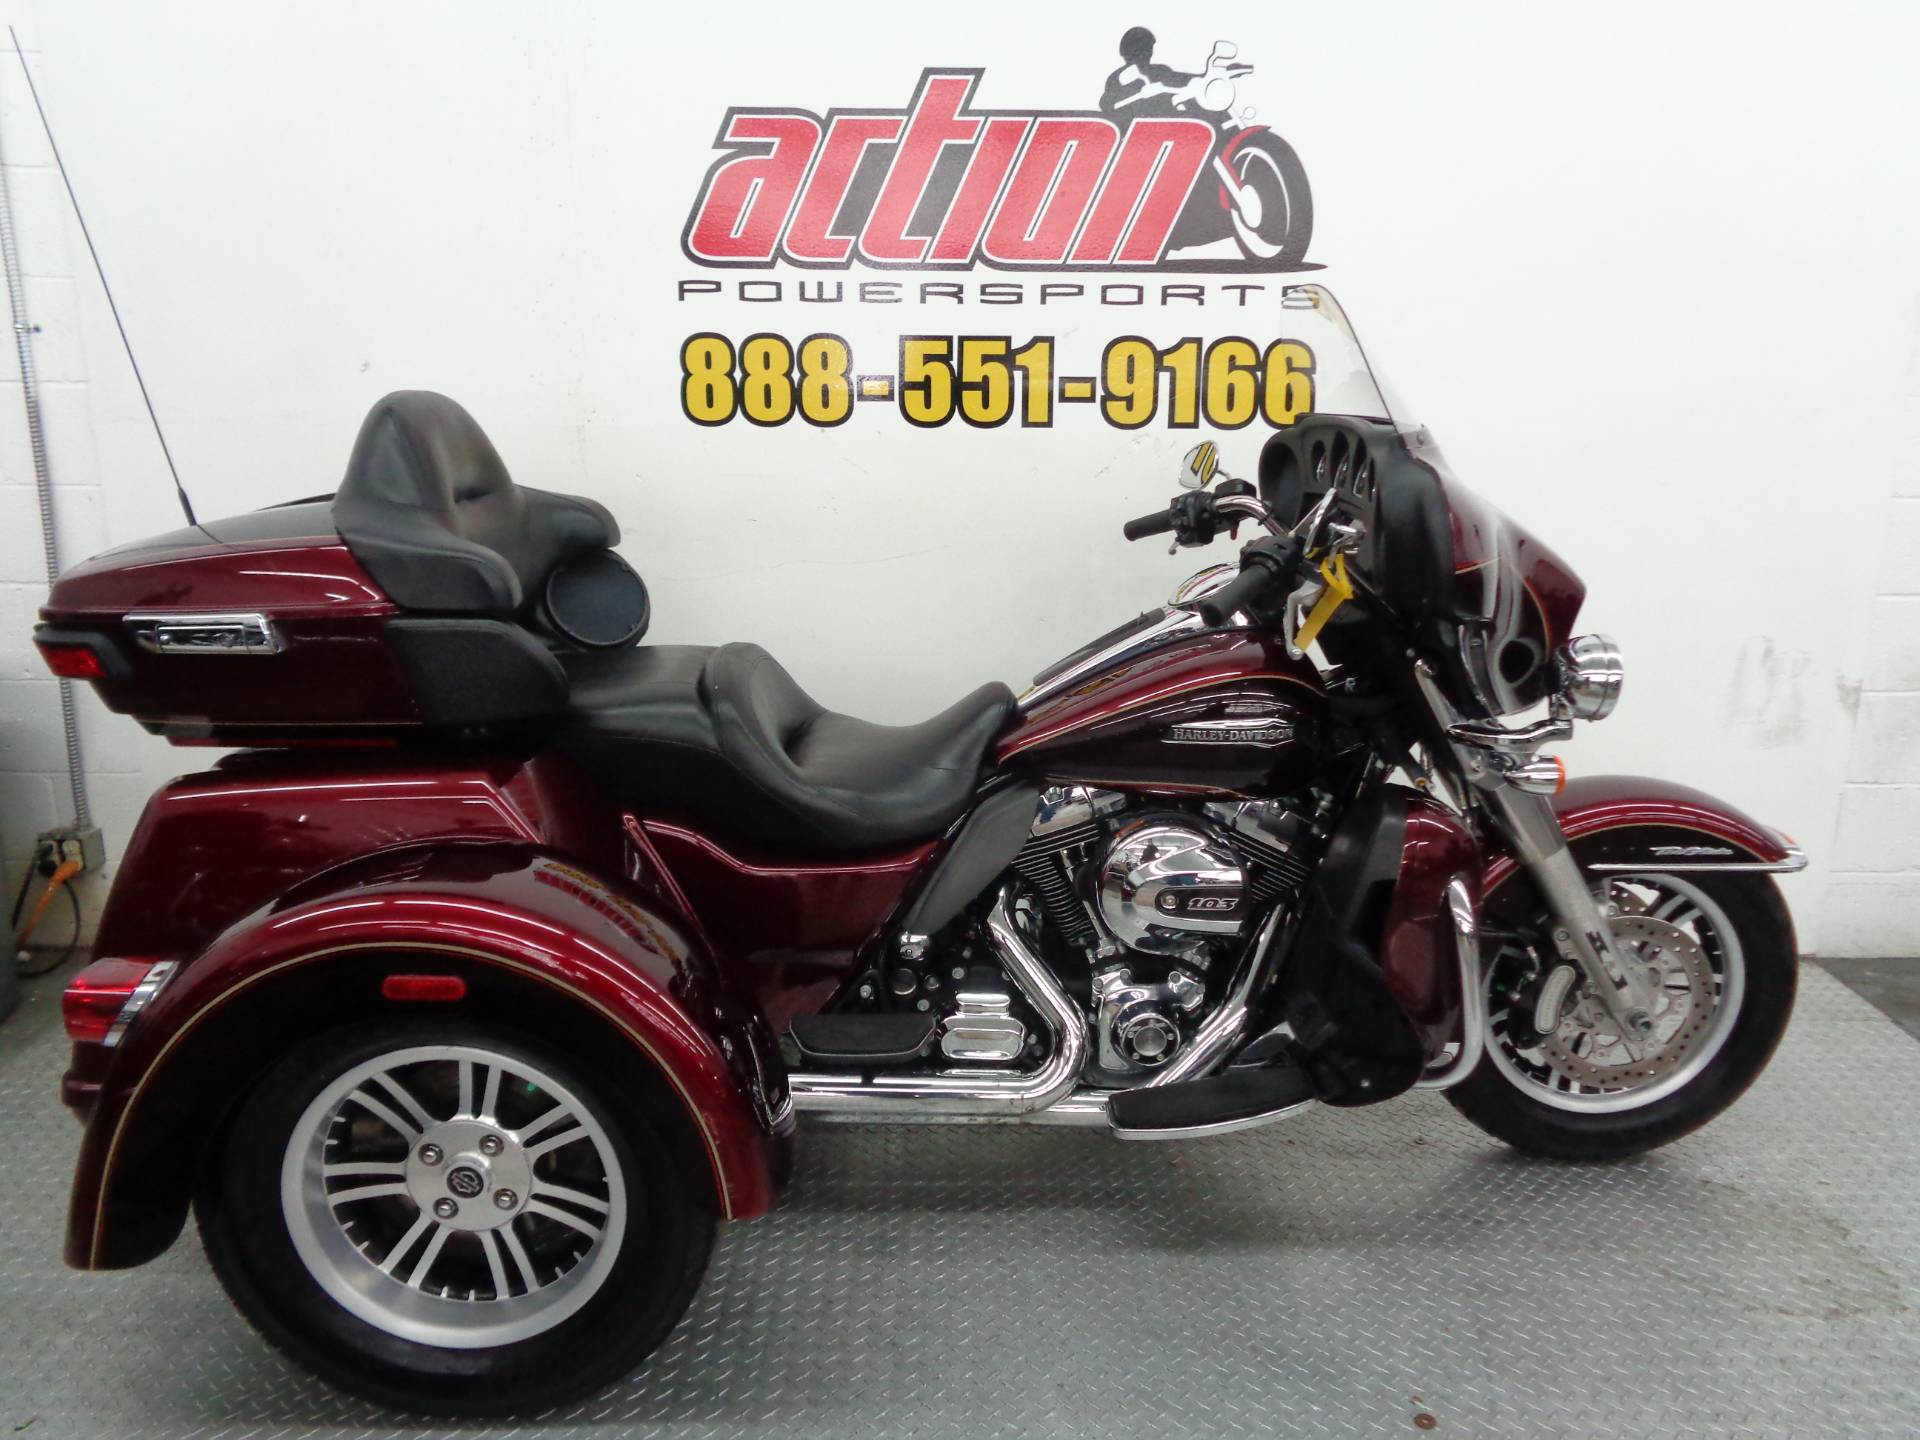 2014 Harley-Davidson Tri Glide Ultra for sale 1054